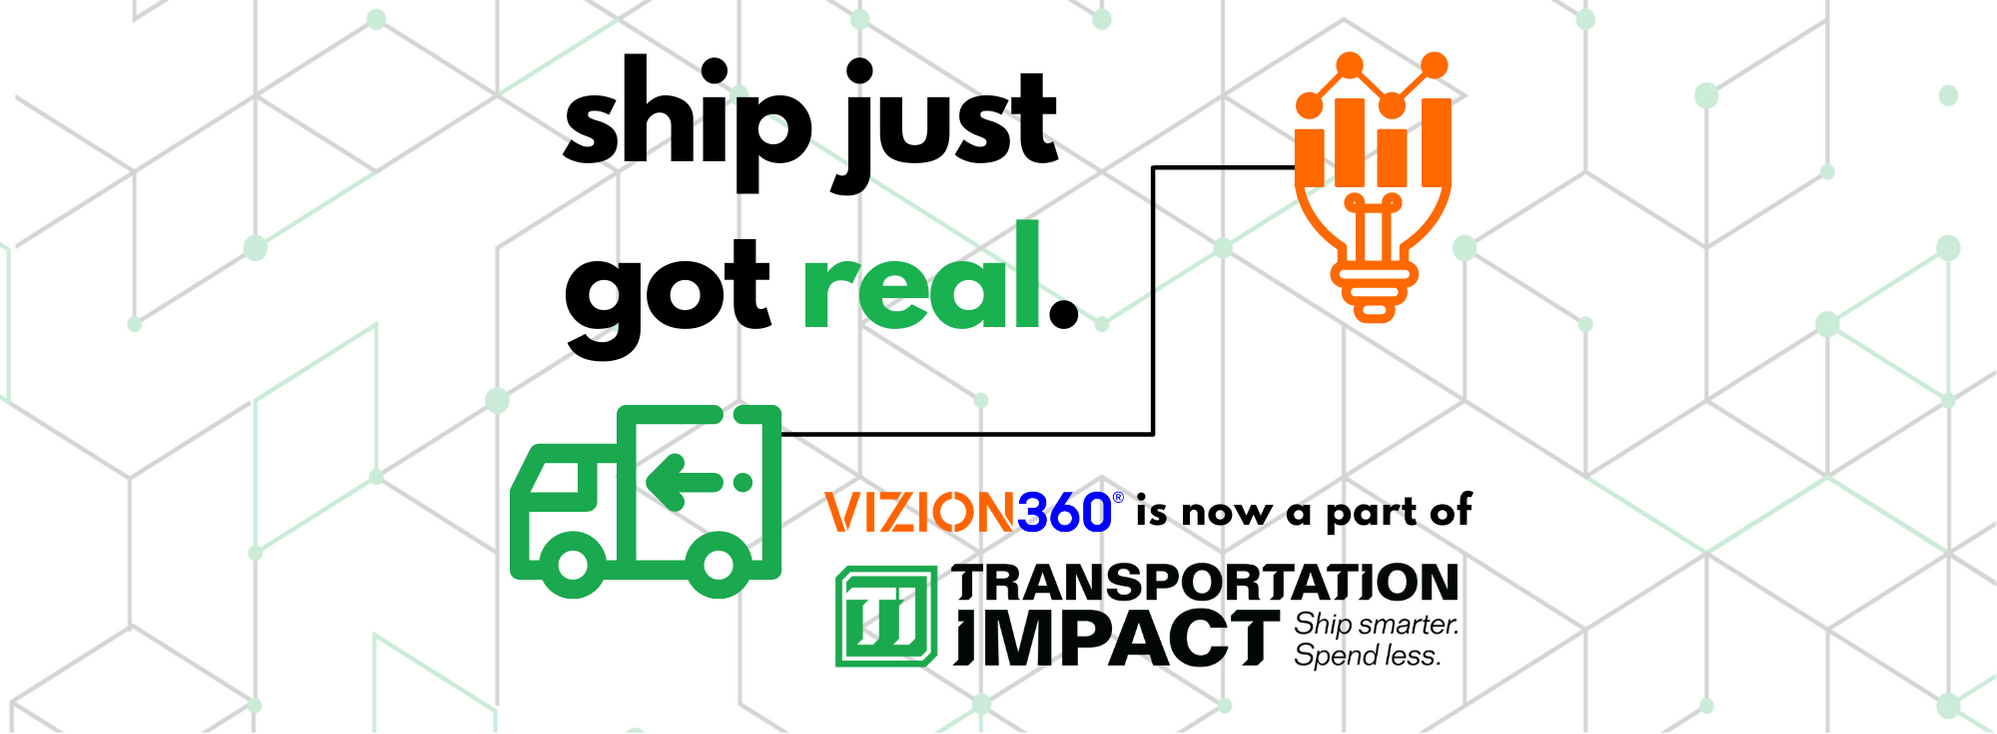 Ship Just Got Real. Vizion360 Acquired by Transportation Impact